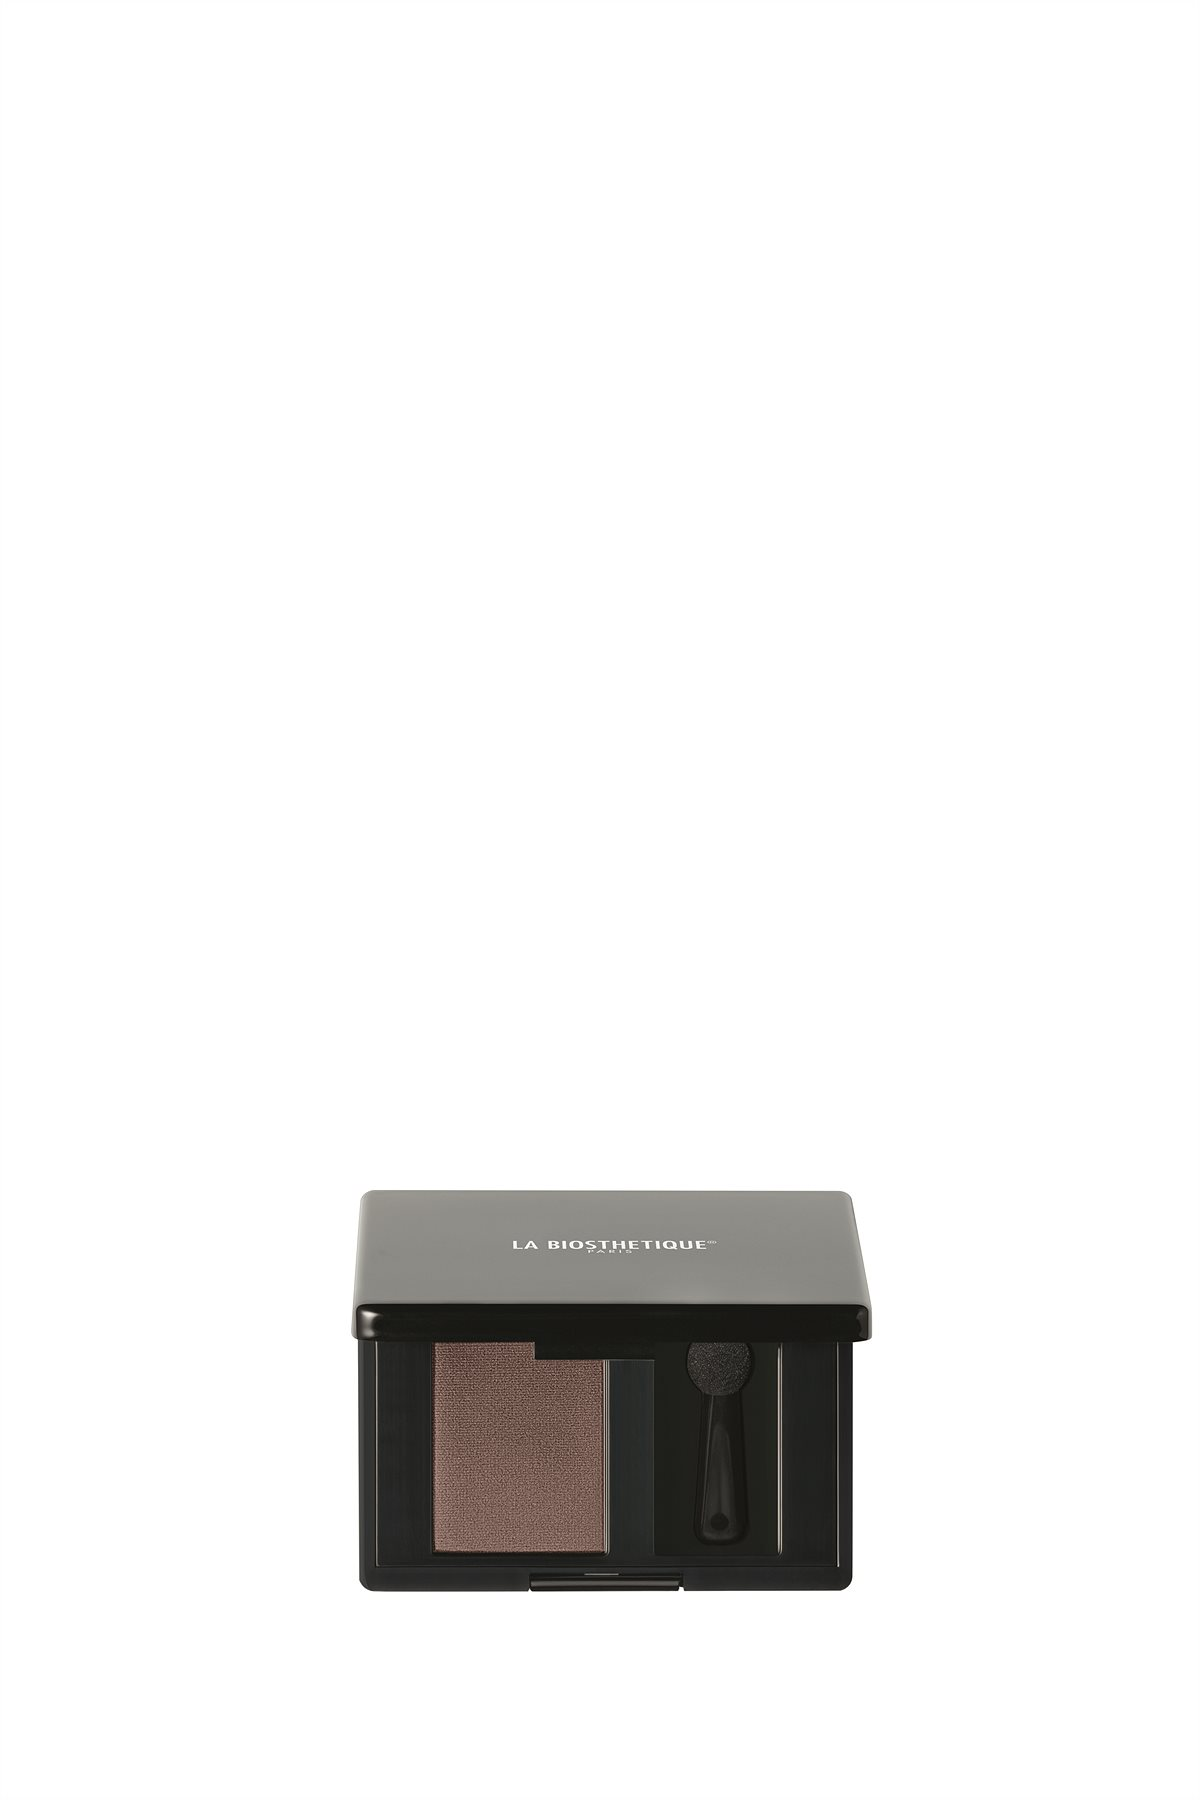 La Biosthétique_Magic Shadow Sheer Taupe_EUR 21,50